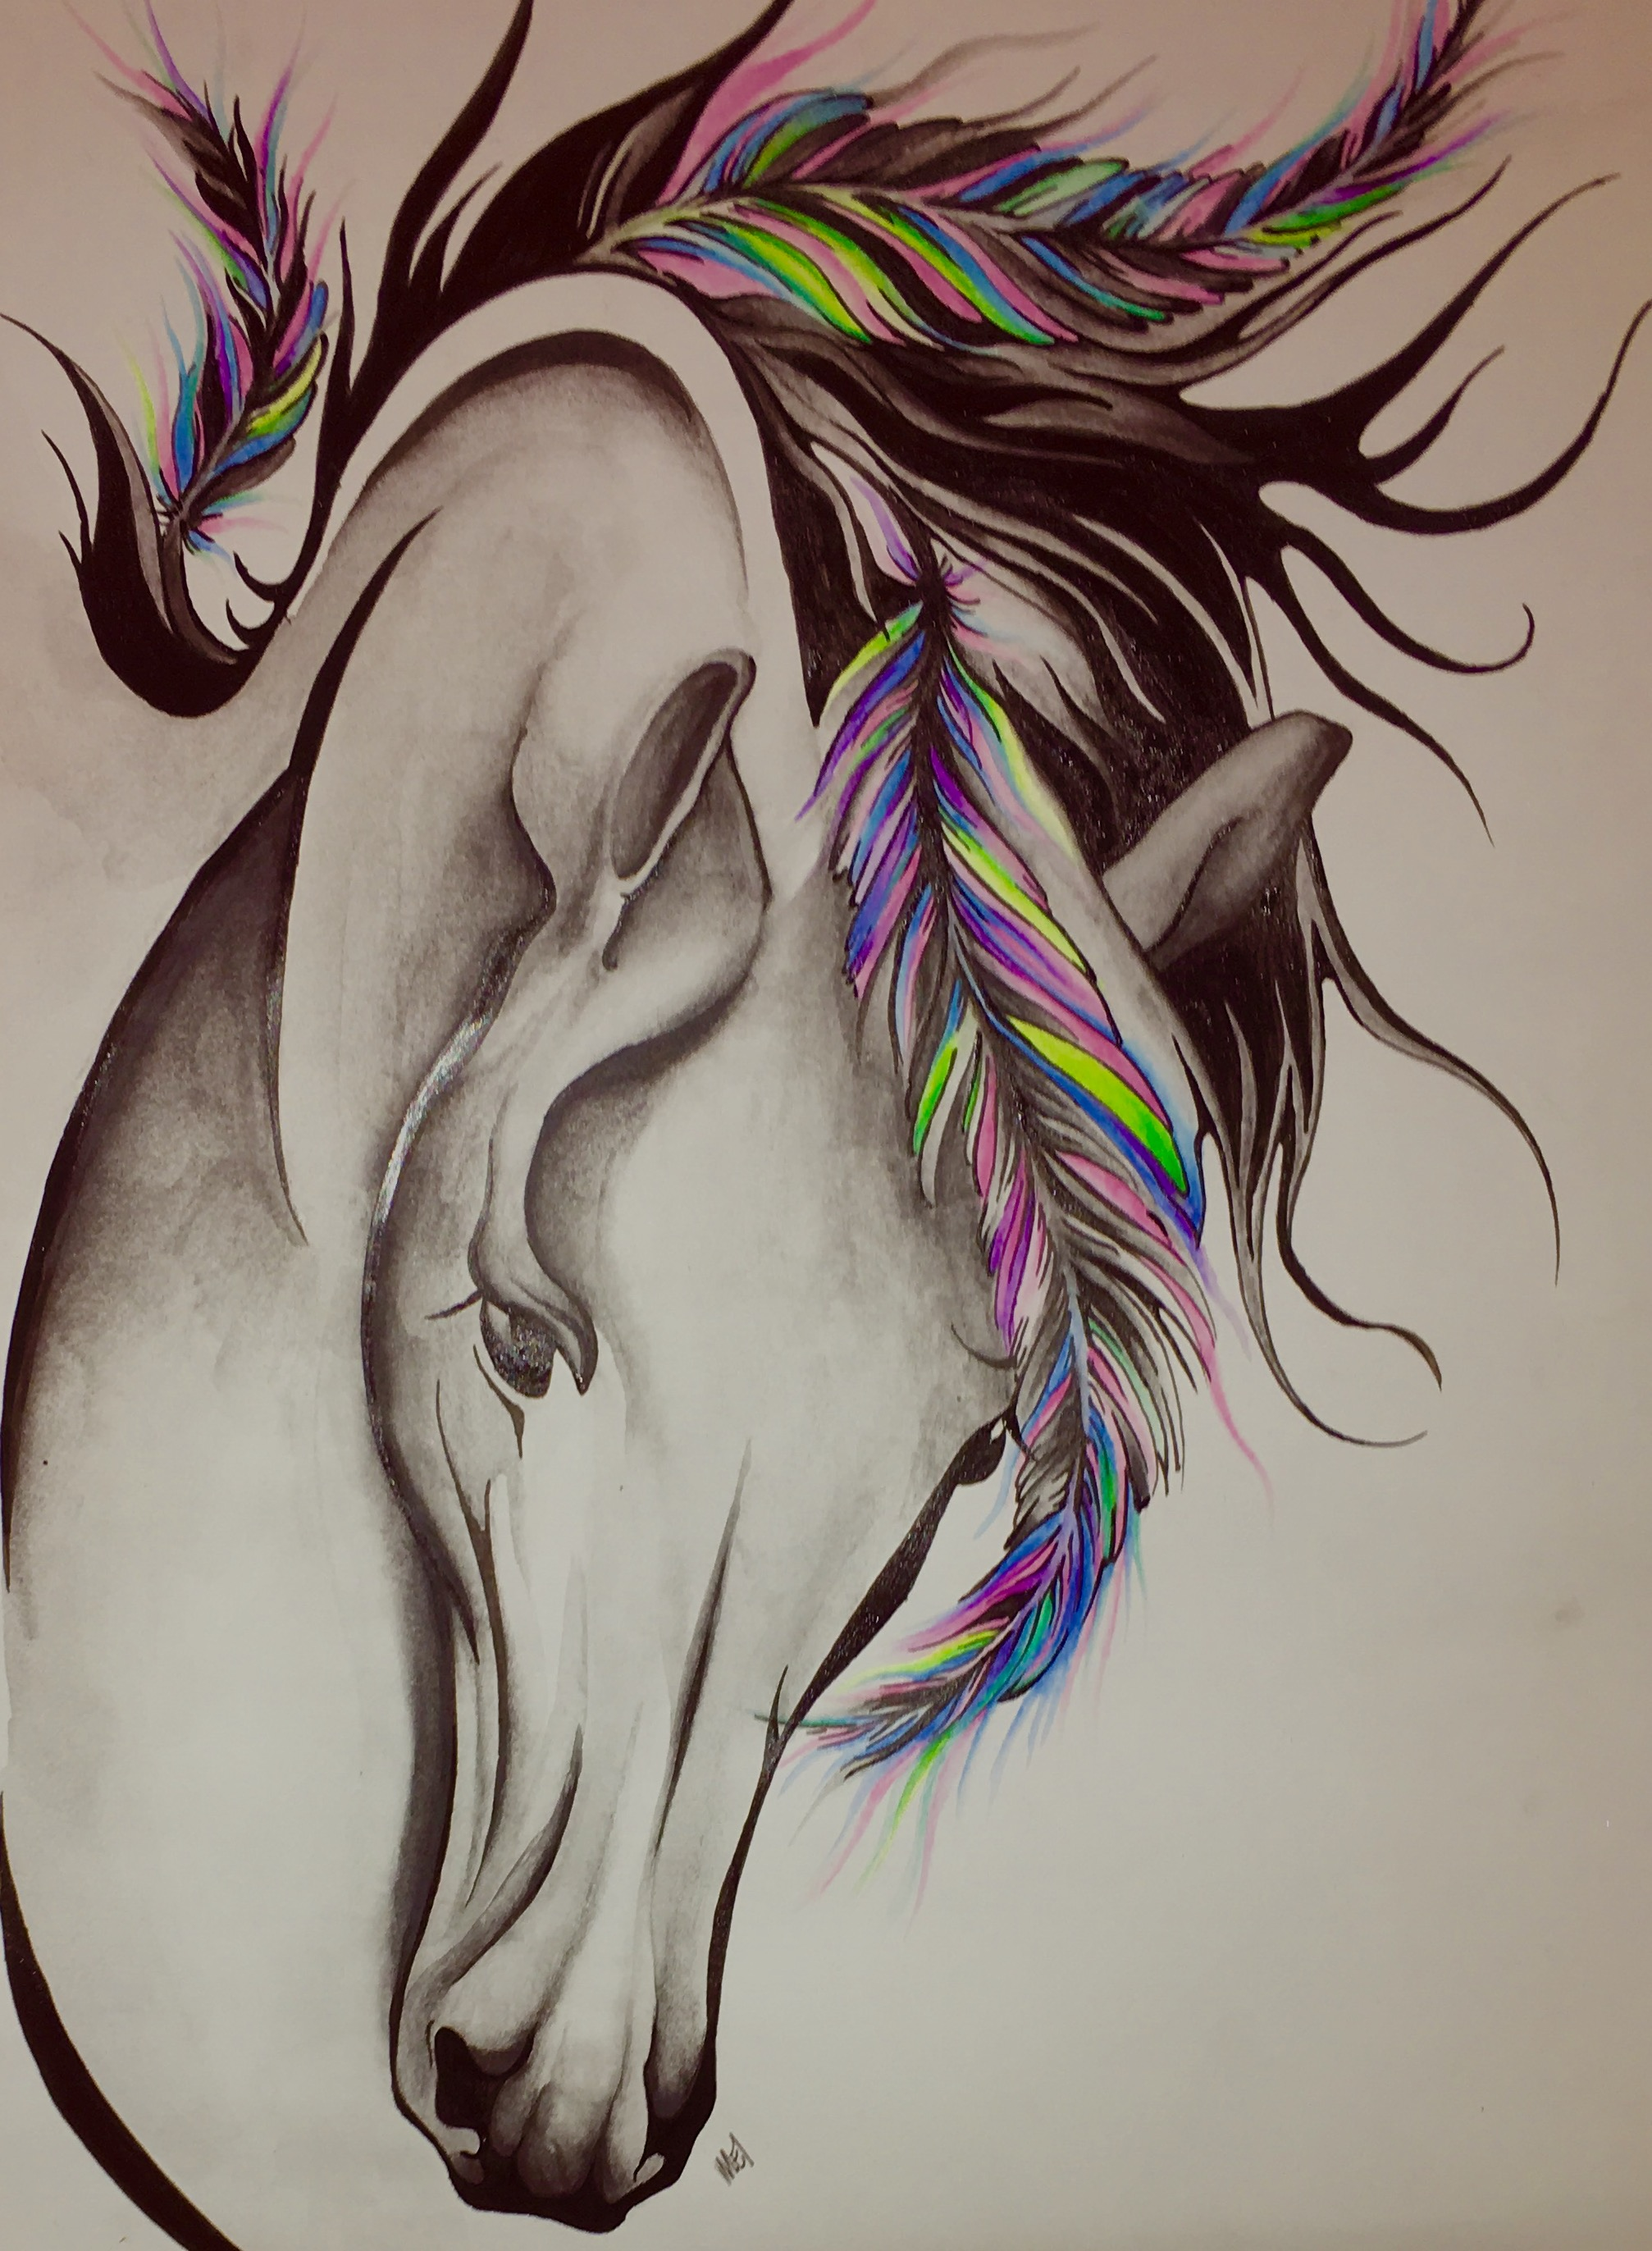 2014x2744 Horse Tattoos Meanings And Design Ideas